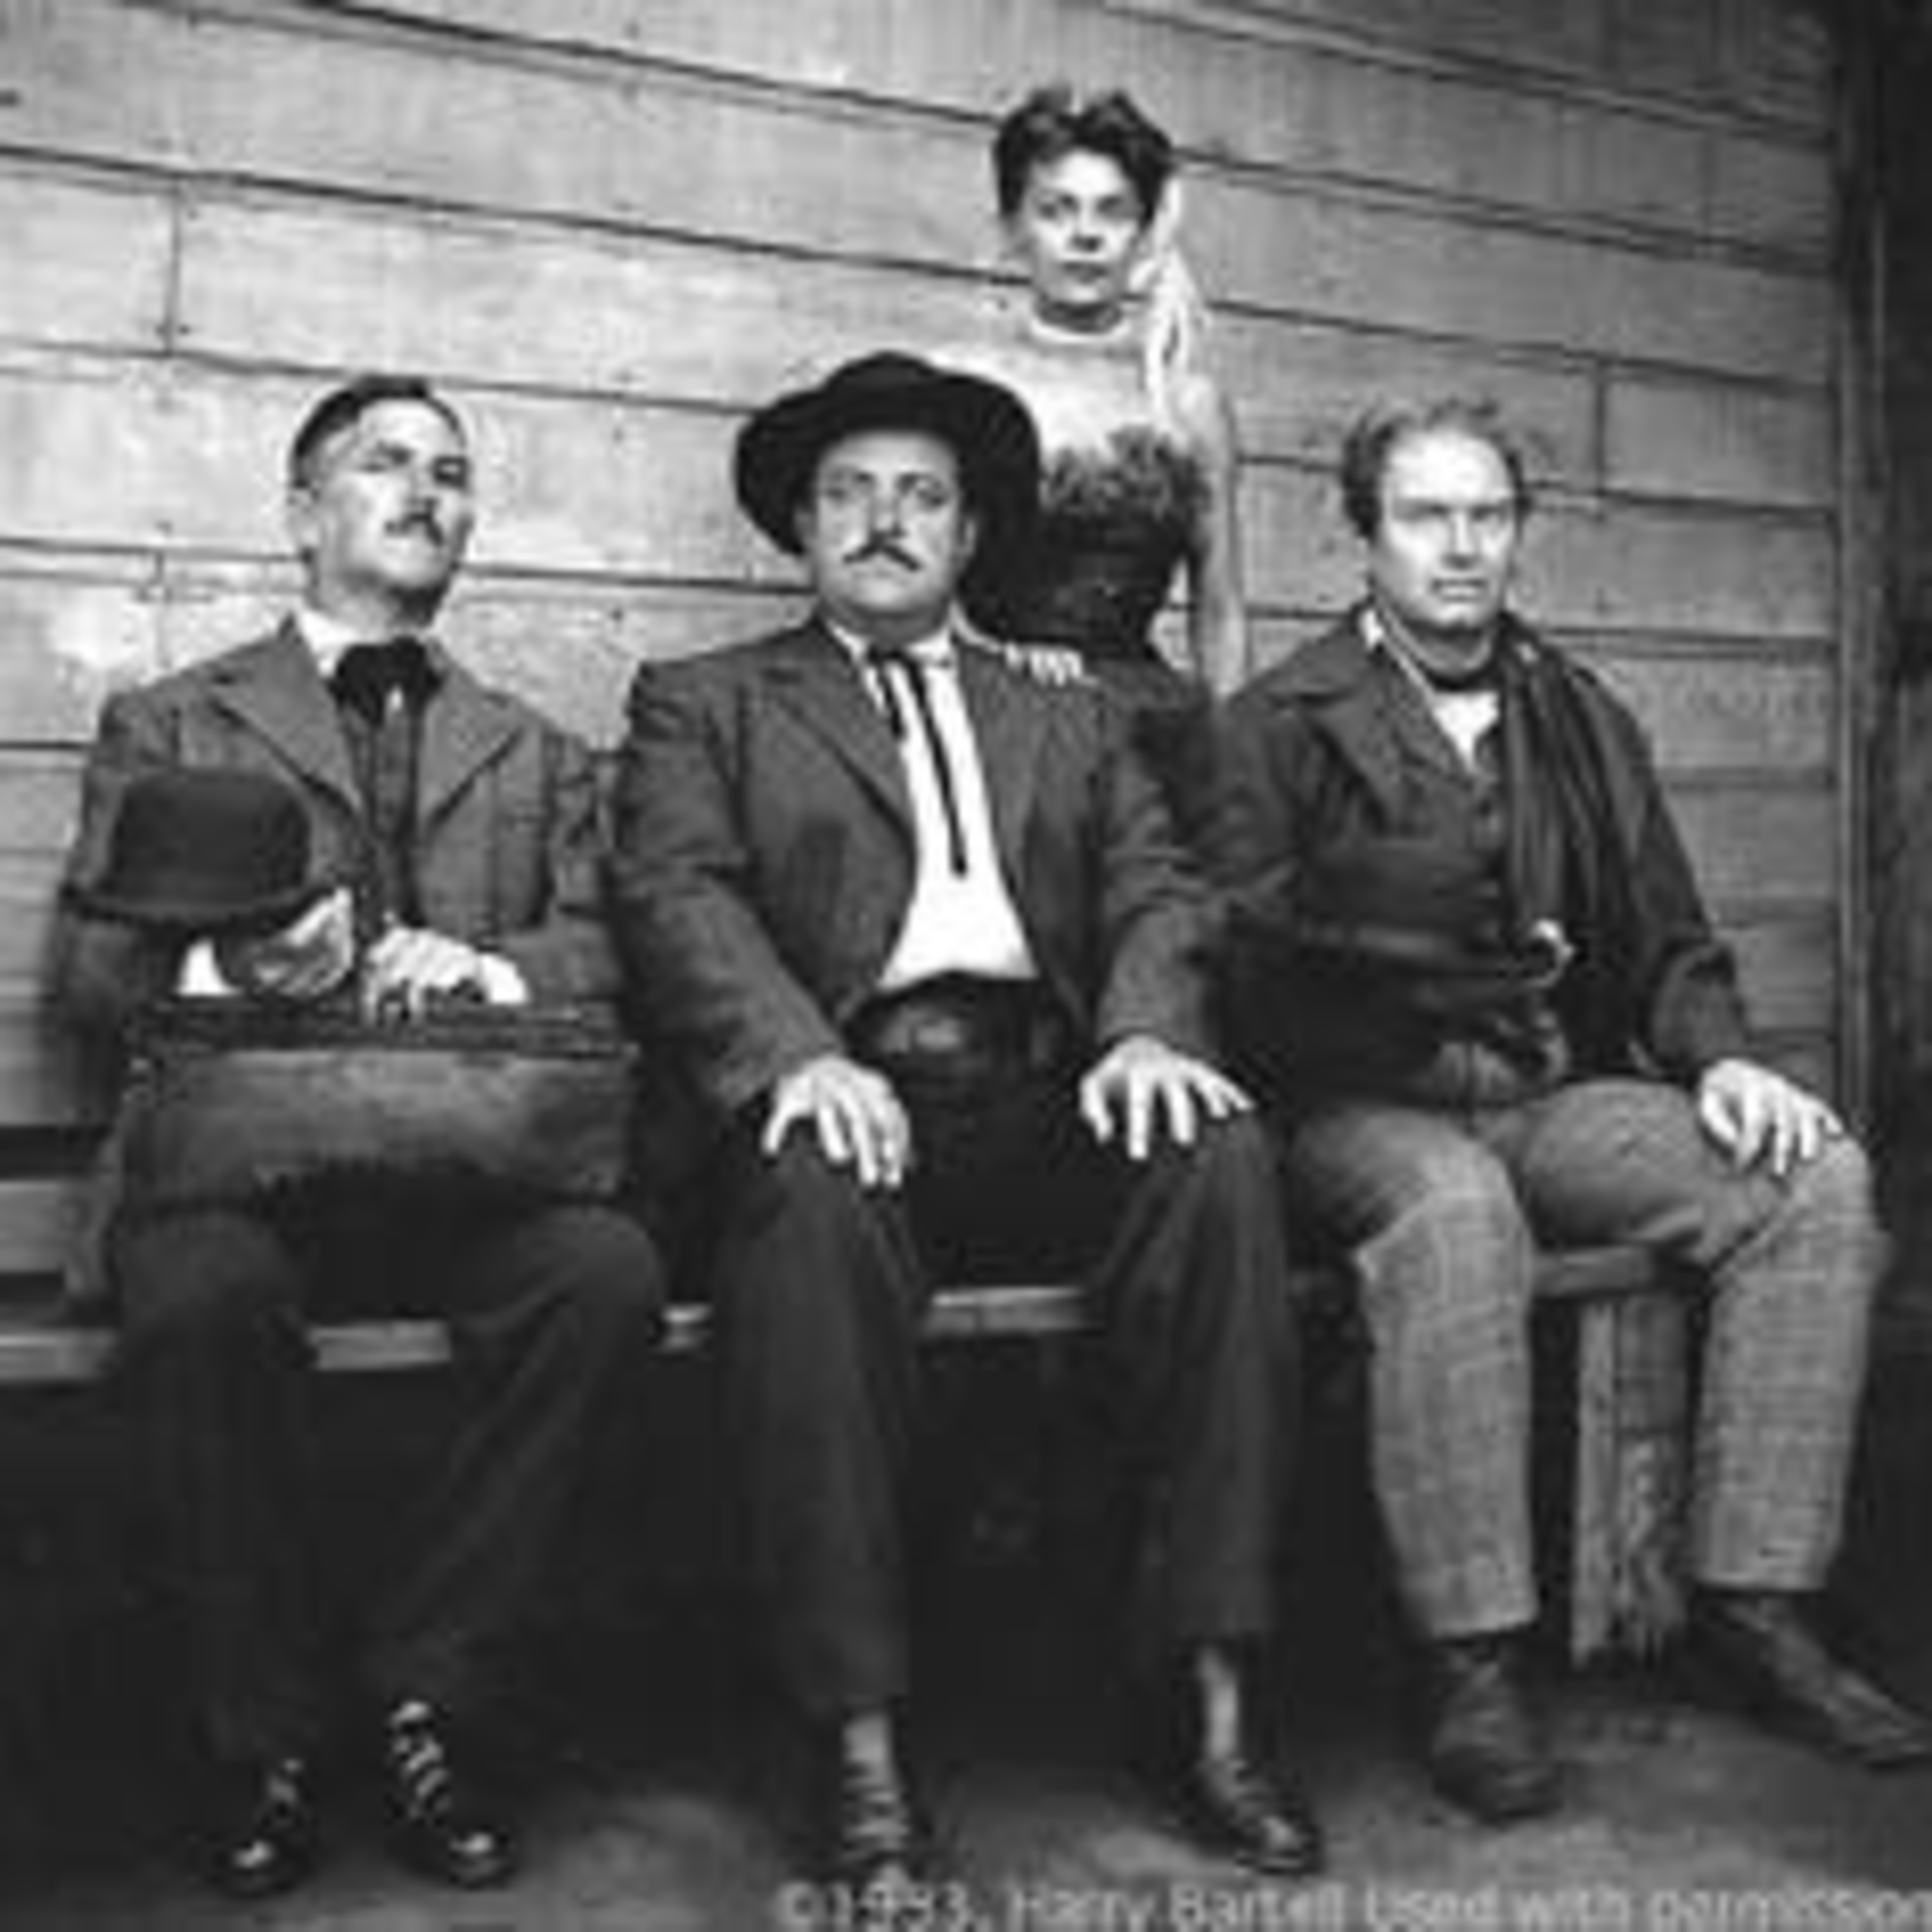 The Gunsmoke Podcast - Bone Hunters - Magnus - Radio's Last Great Dramatic Series - Episodes 139 and 140